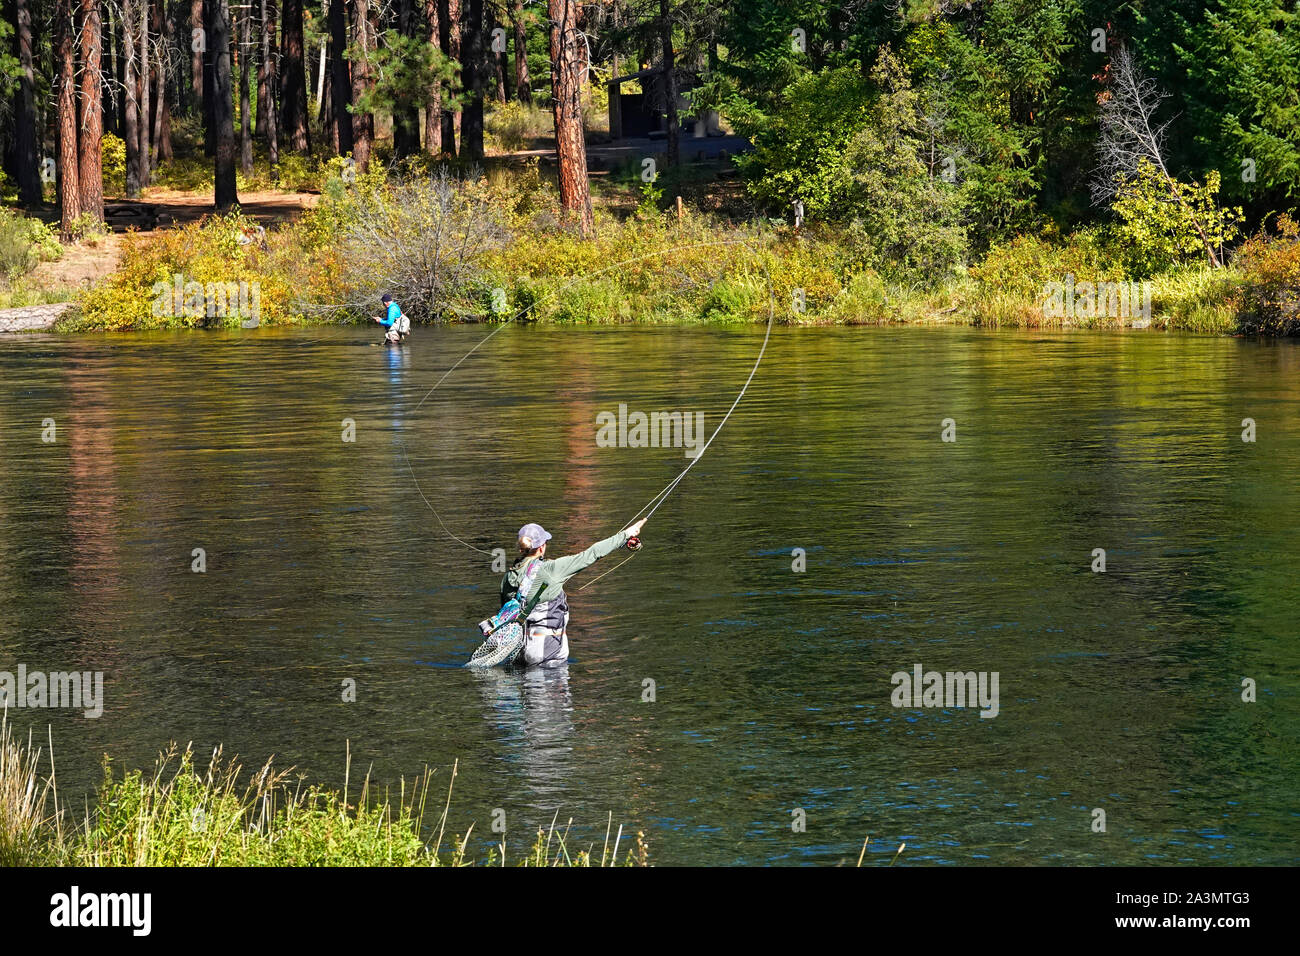 A female flycaster fishes a pool on the beautiful Metolius River in the central Oregon Cascade Mountains Stock Photo